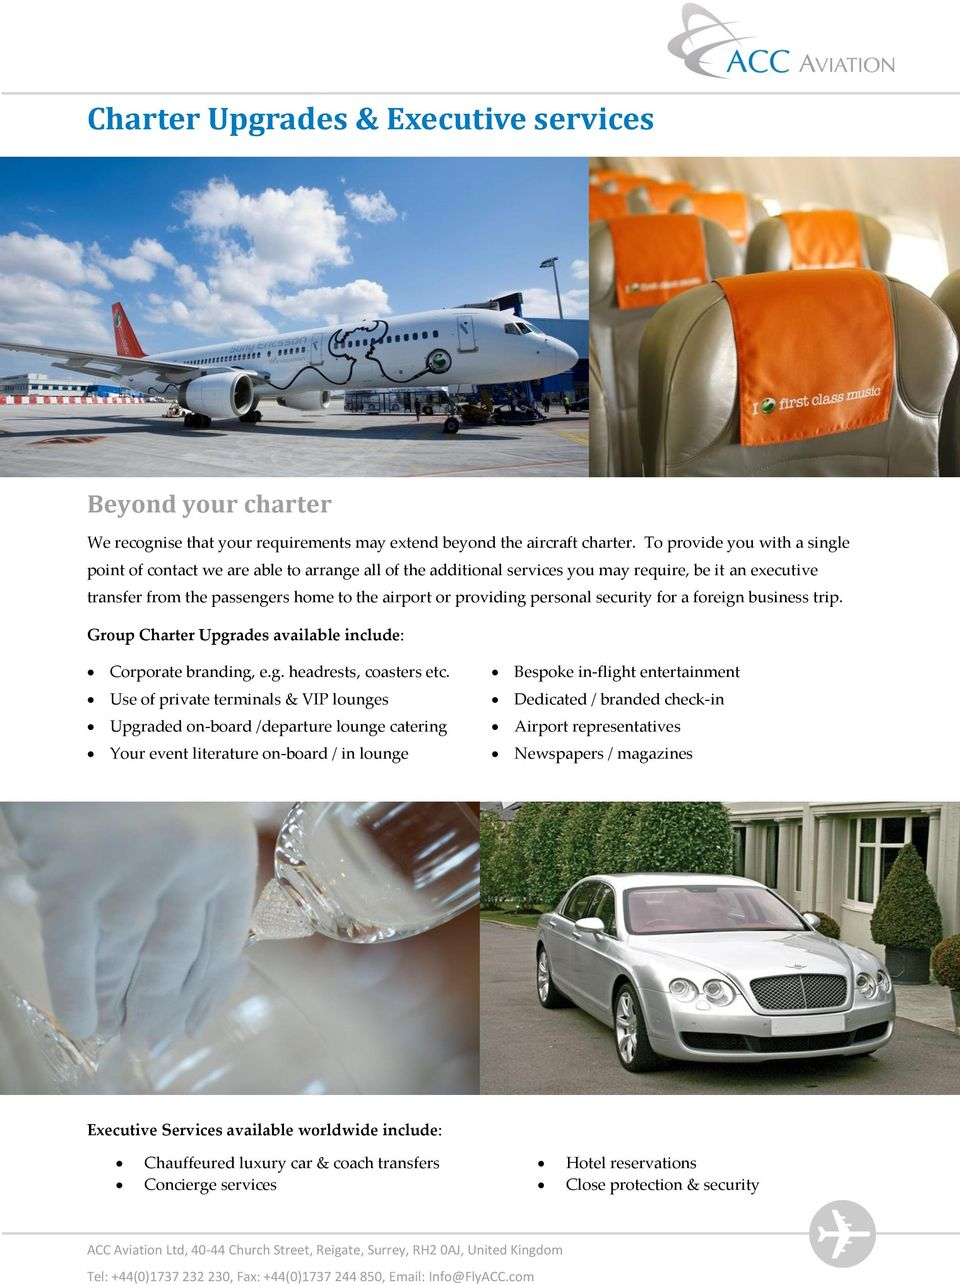 personal security for a foreign business trip. Group Charter Upgrades available include: Corporate branding, e.g. headrests, coasters etc.